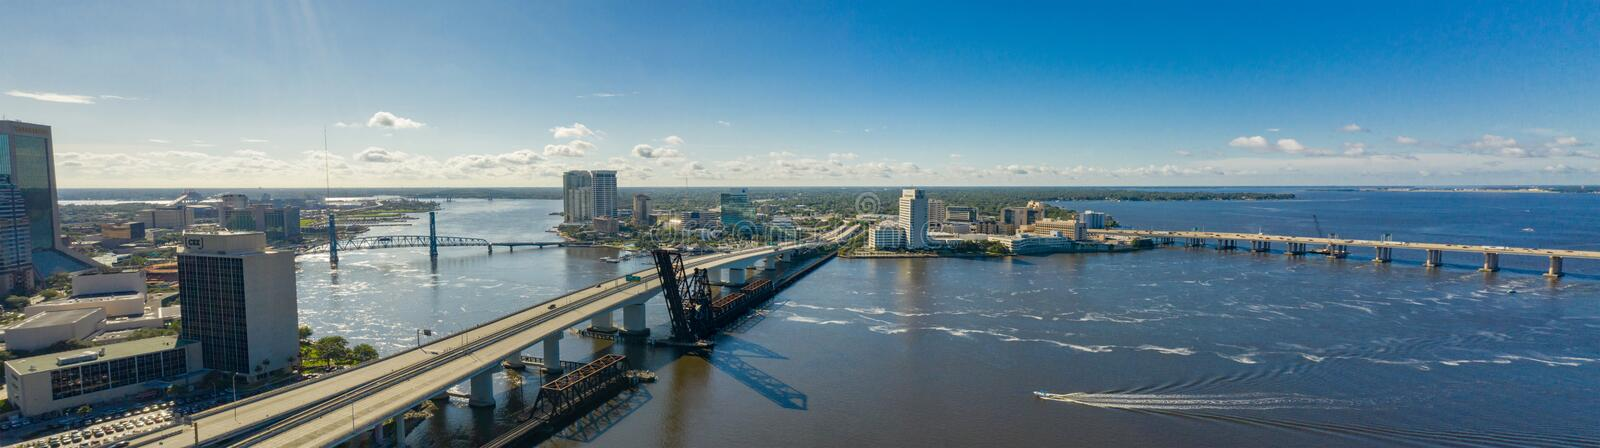 Aerial panoramic photo Downtown Jacksonville bridges over the St Johns River stock photo